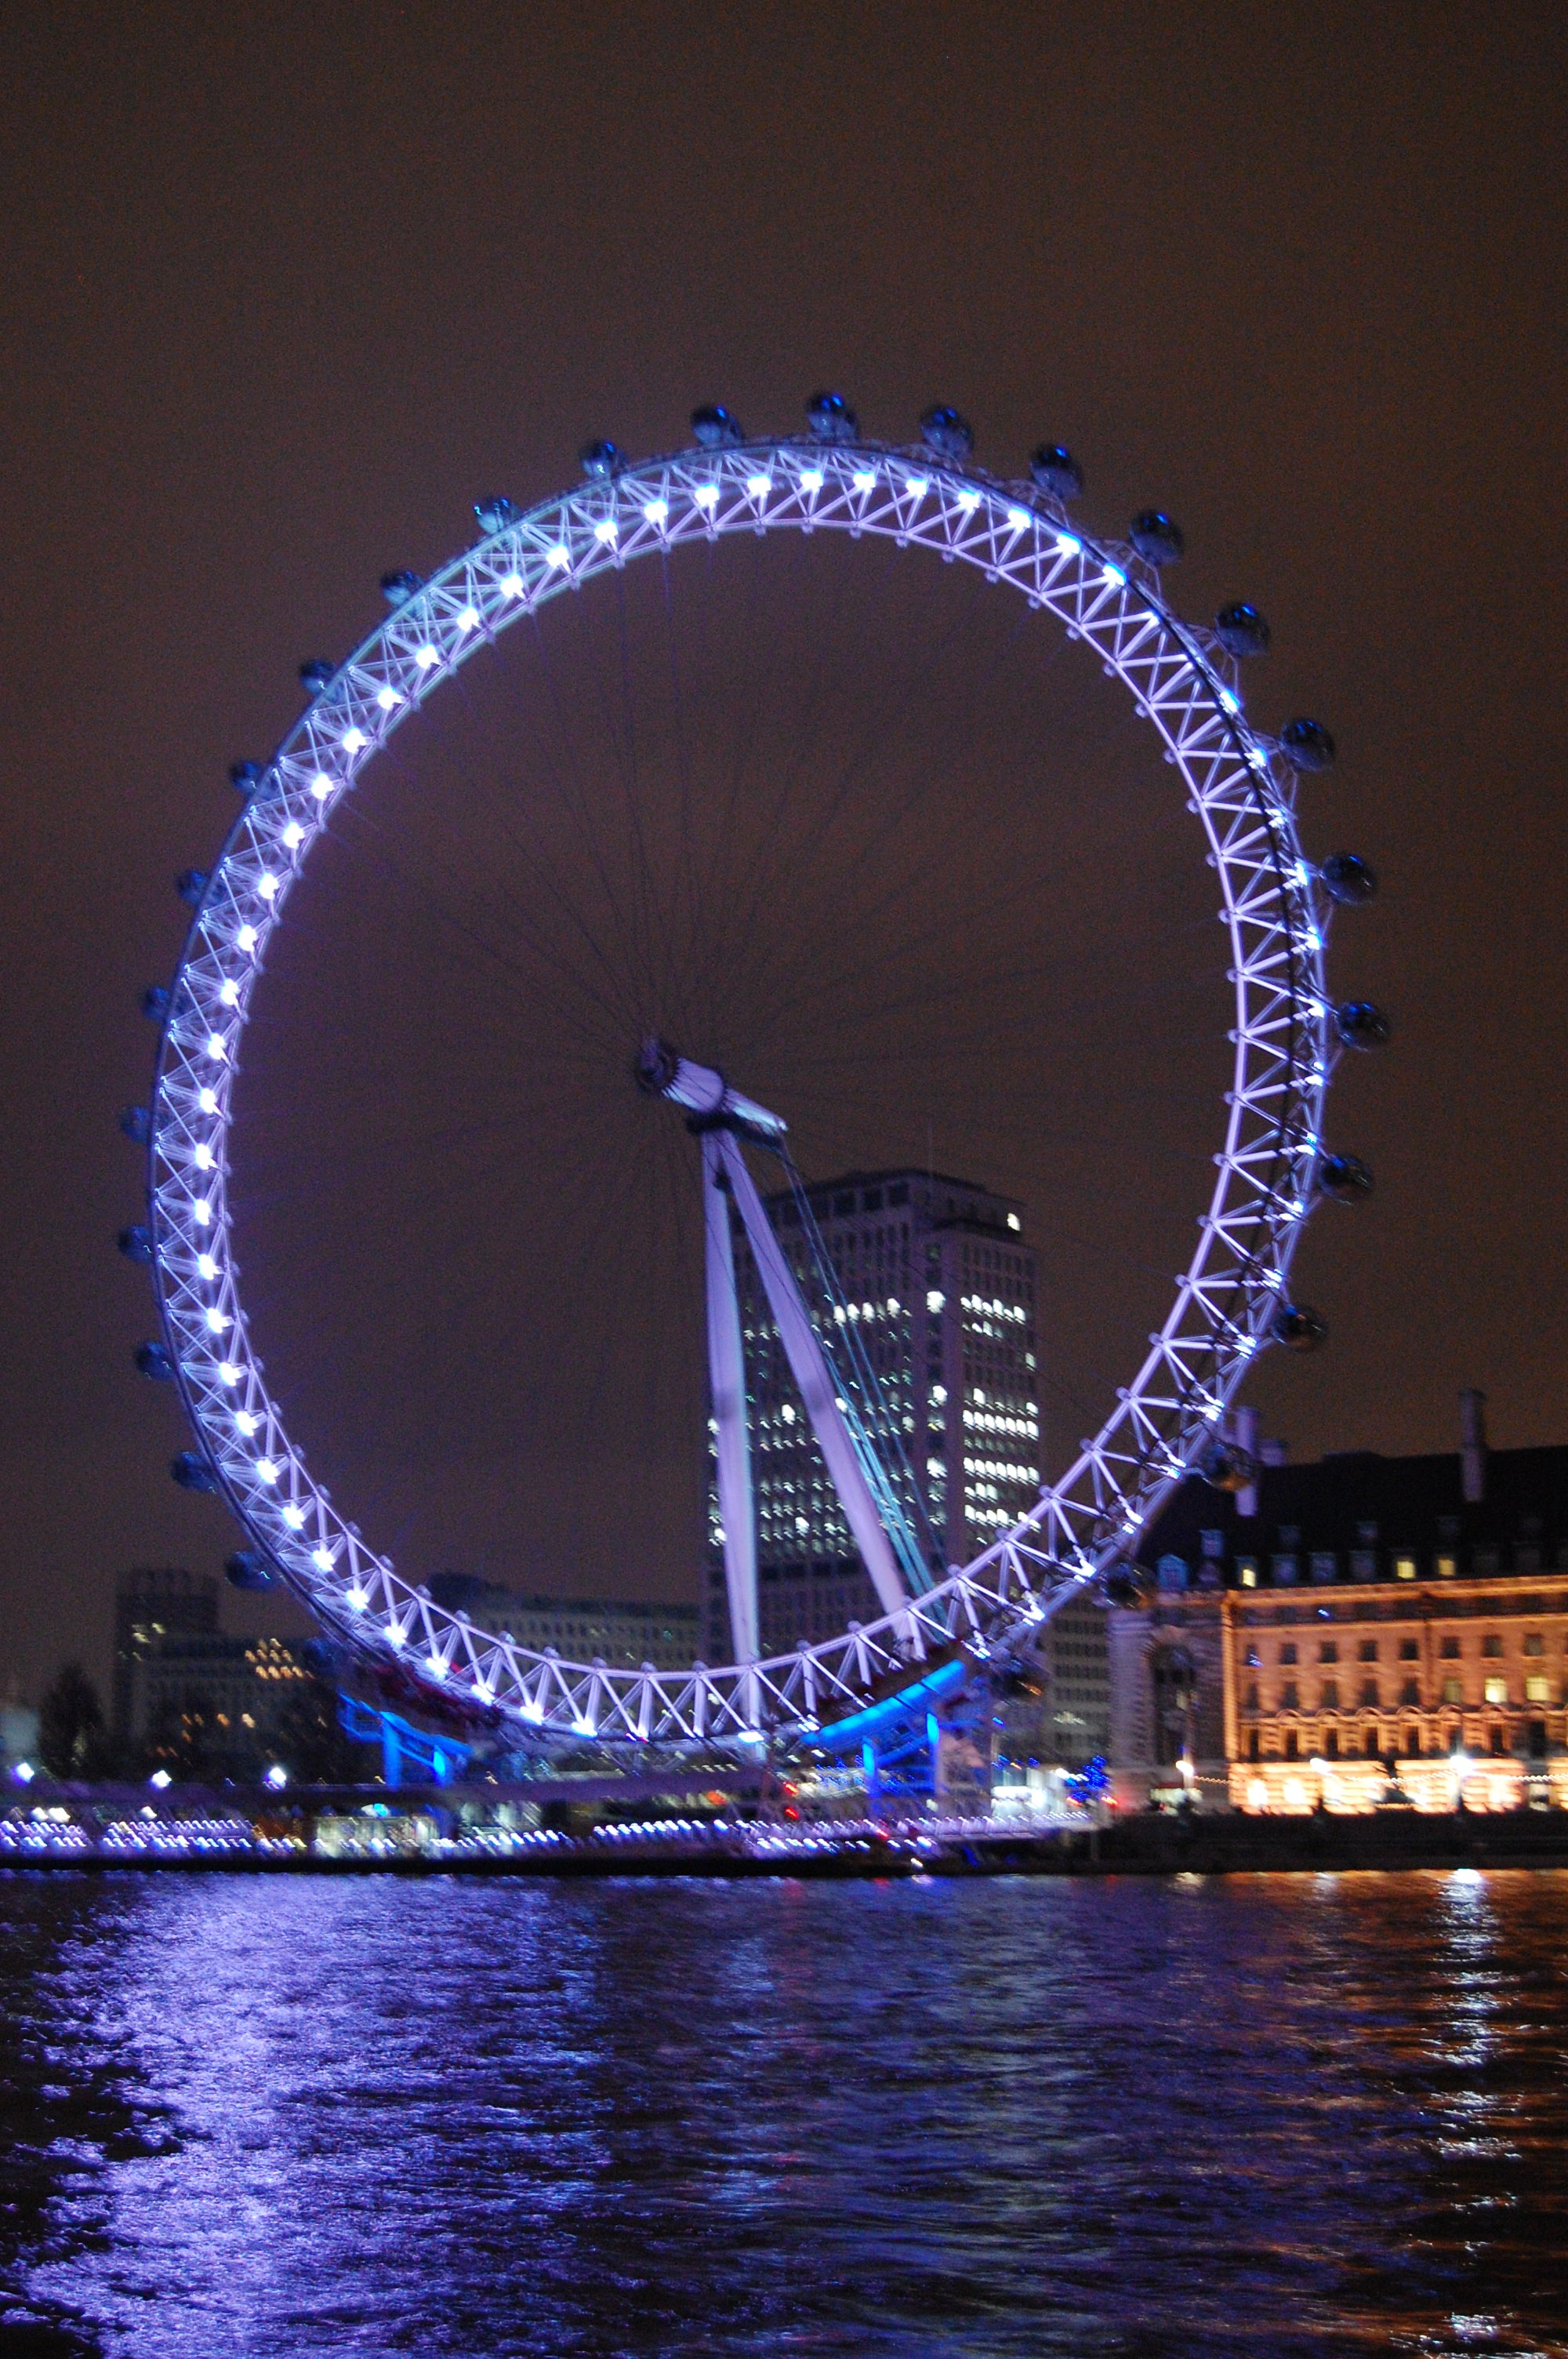 Noche en London Eye